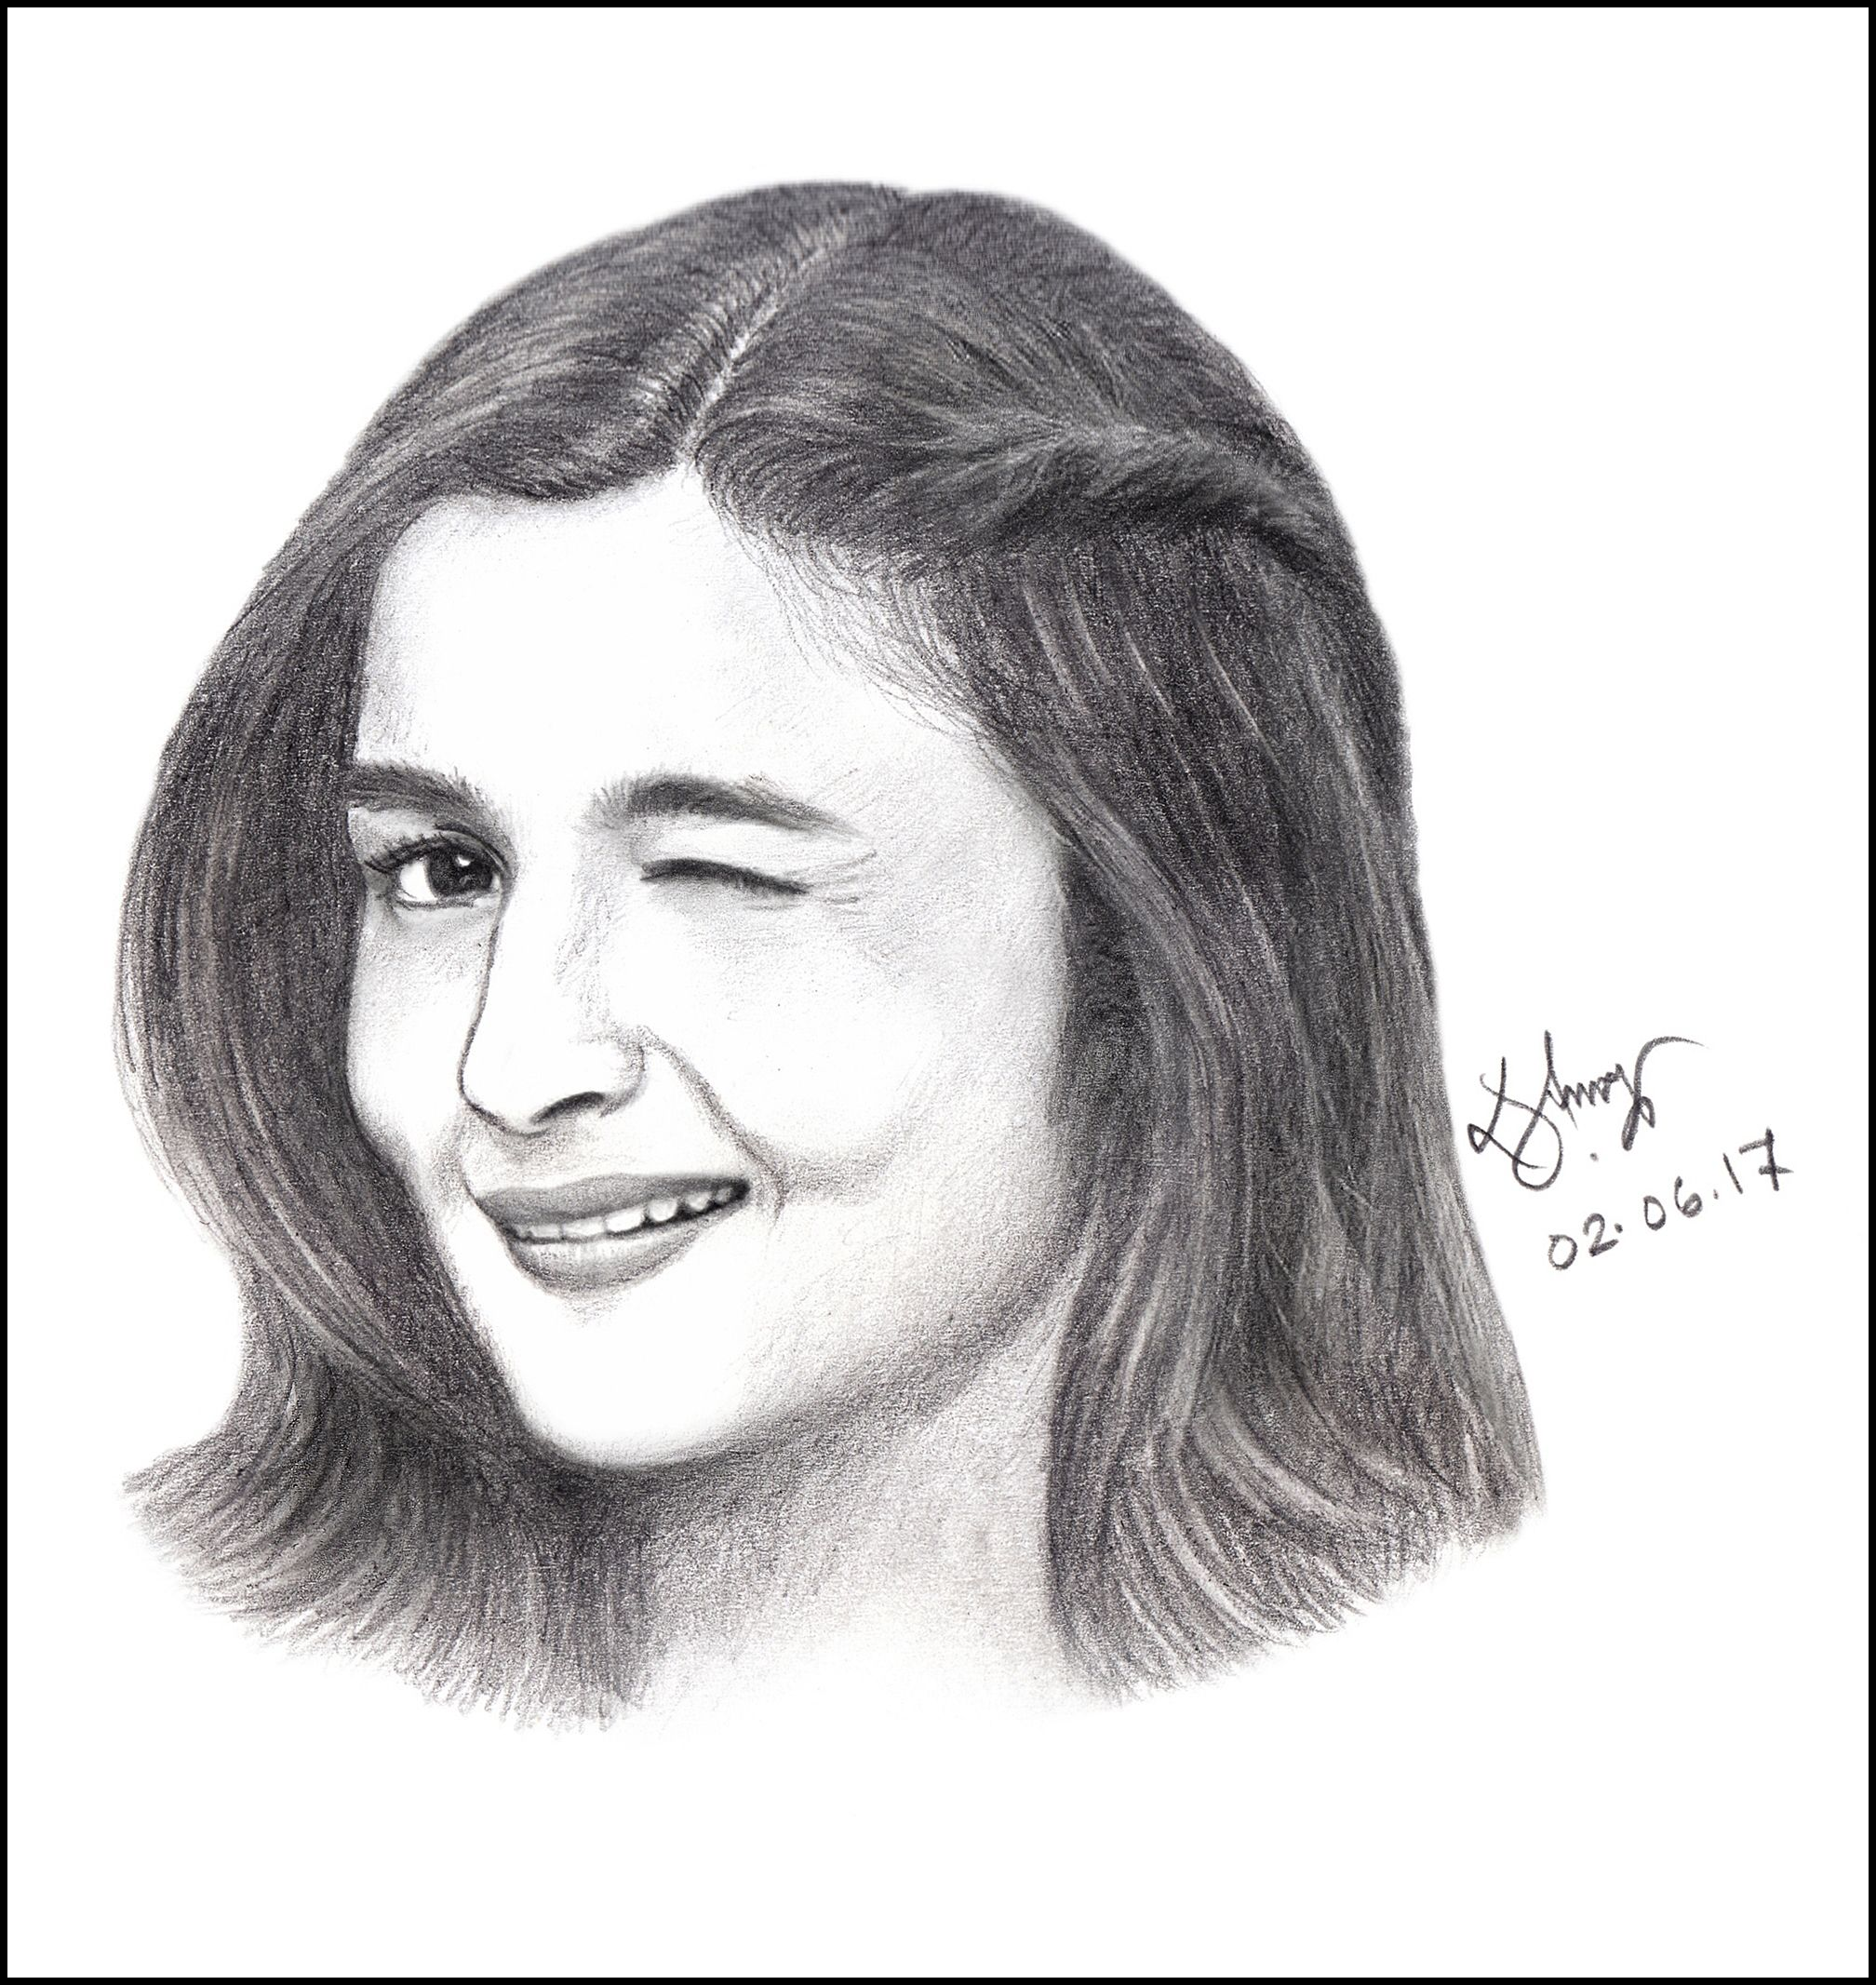 Alia bhatt sketch alia aliabhatt pencilsketch art sketch drawing portrait